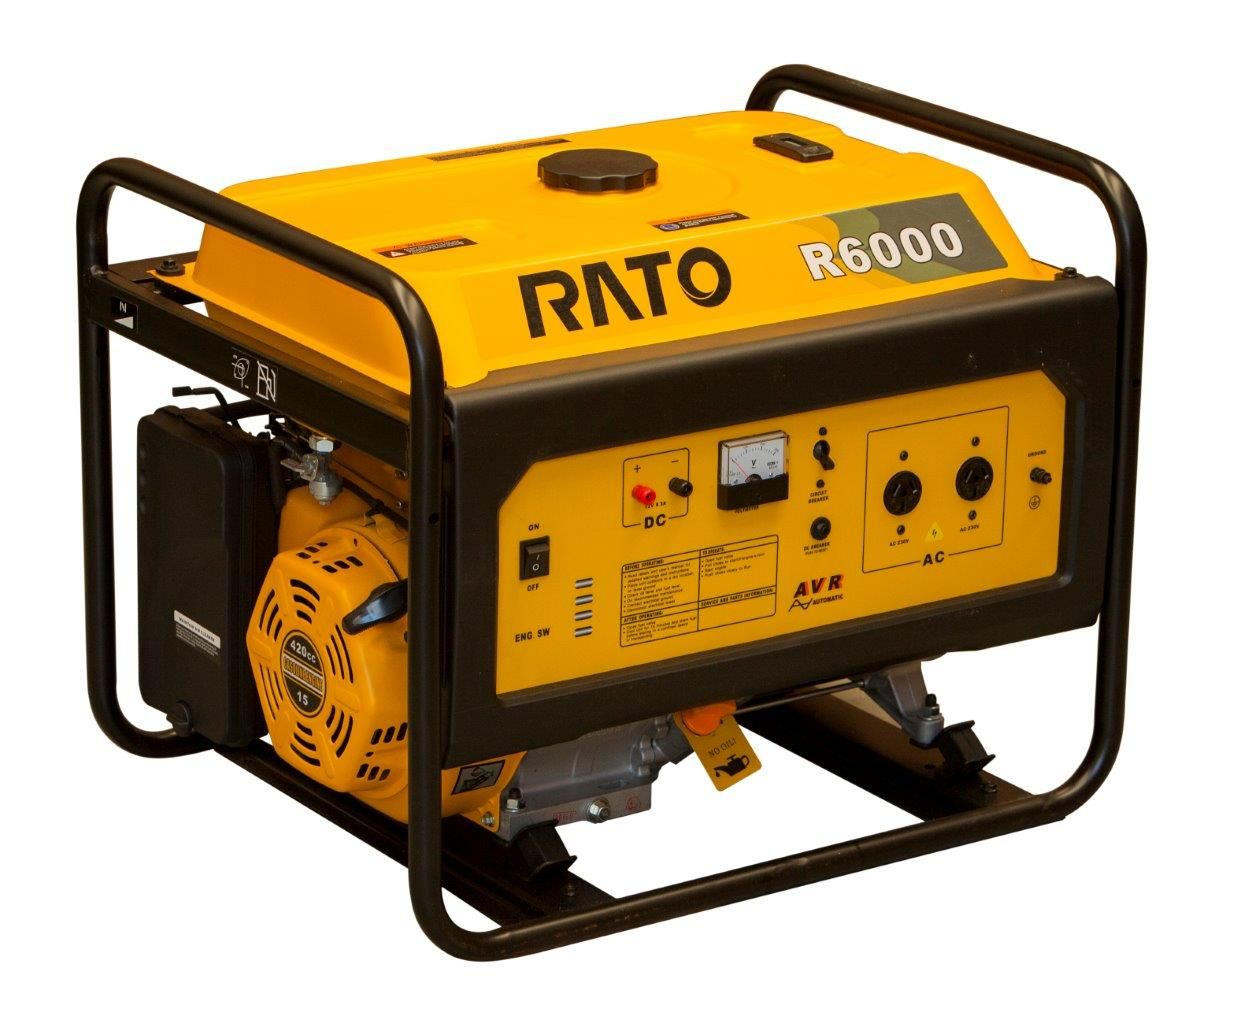 Generator R6000 6kw Petrol Rato Australia The Home Of Wiring Diagram Further Wen In High Quality Engines